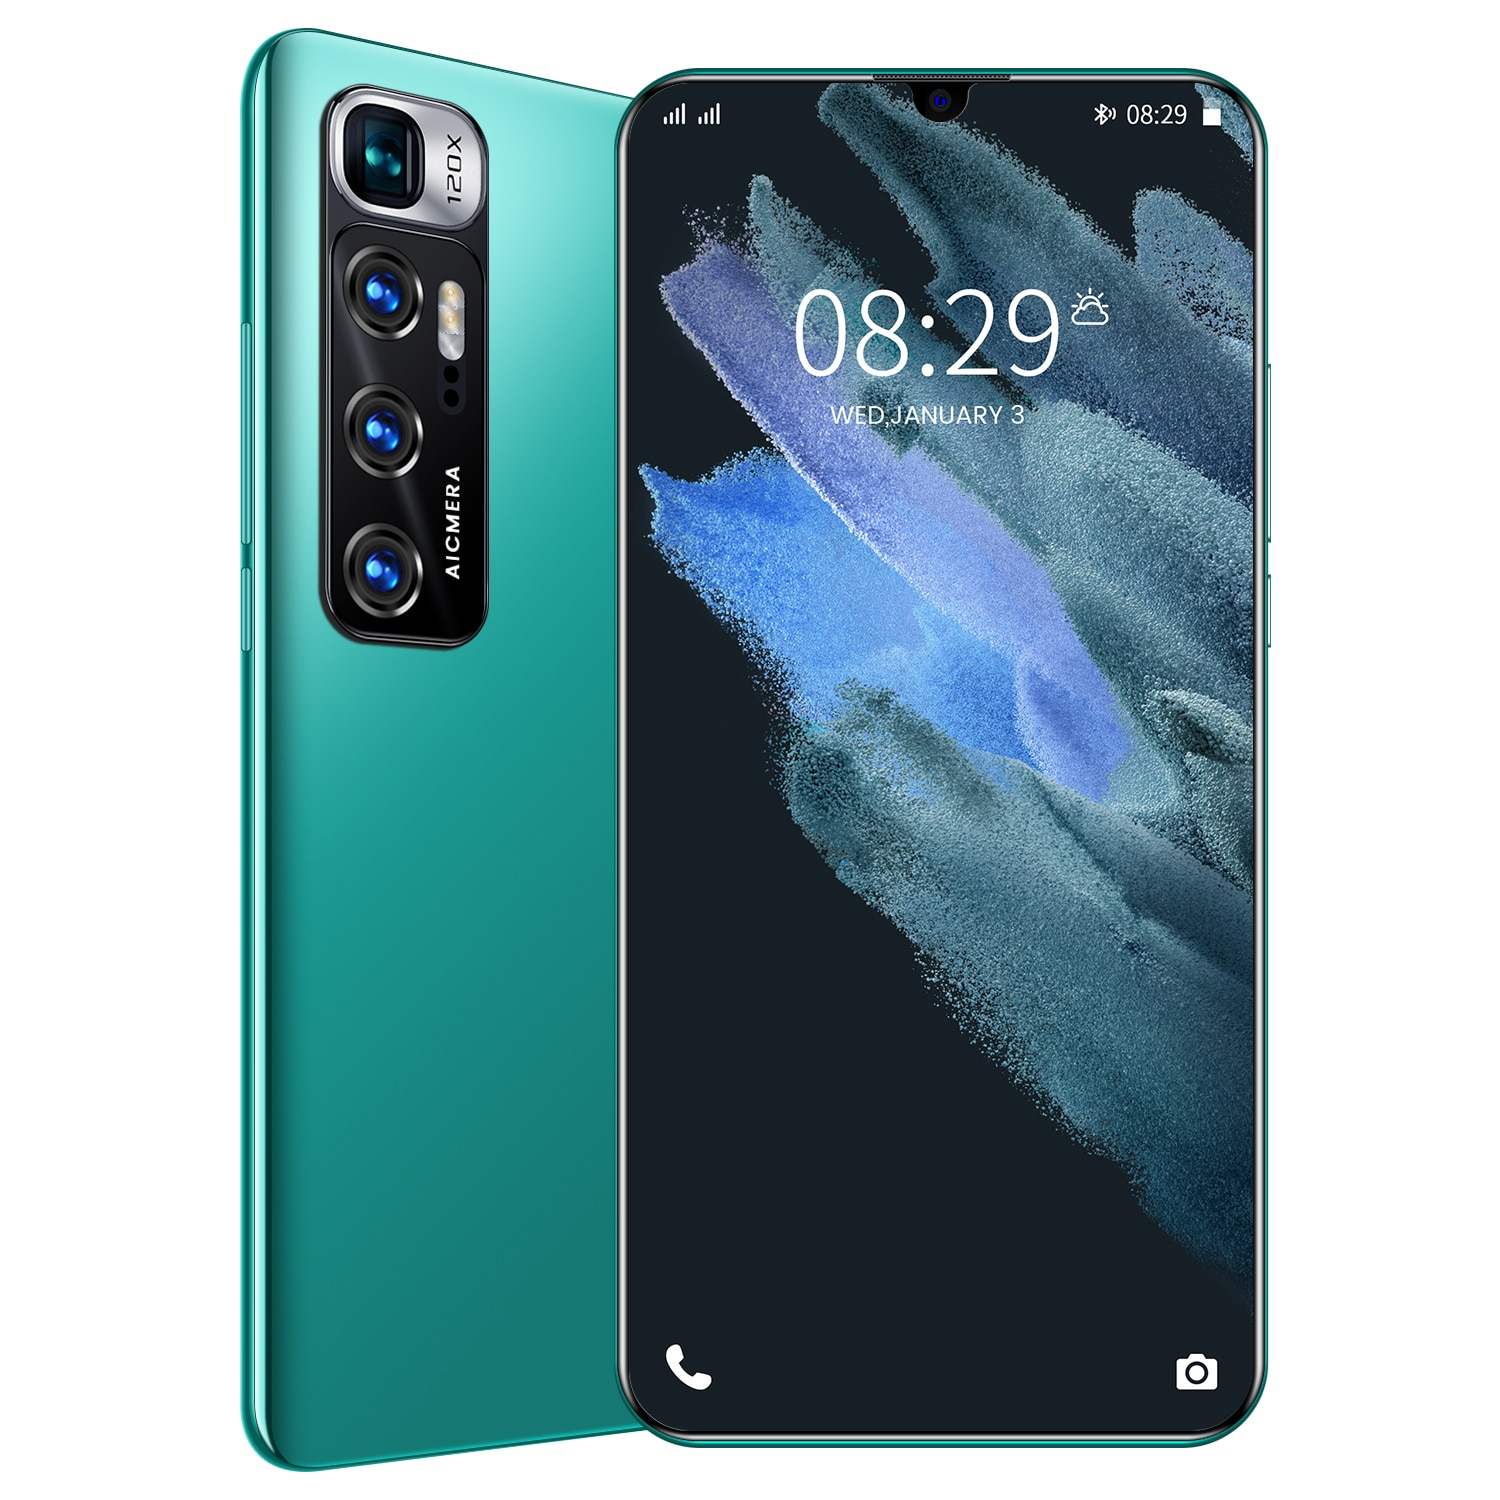 M11 pro Smart phone 6.2 hd smartphone 2GB 32GB 4G network Android Global unlock cell phone Dual SIM Card mobile phone